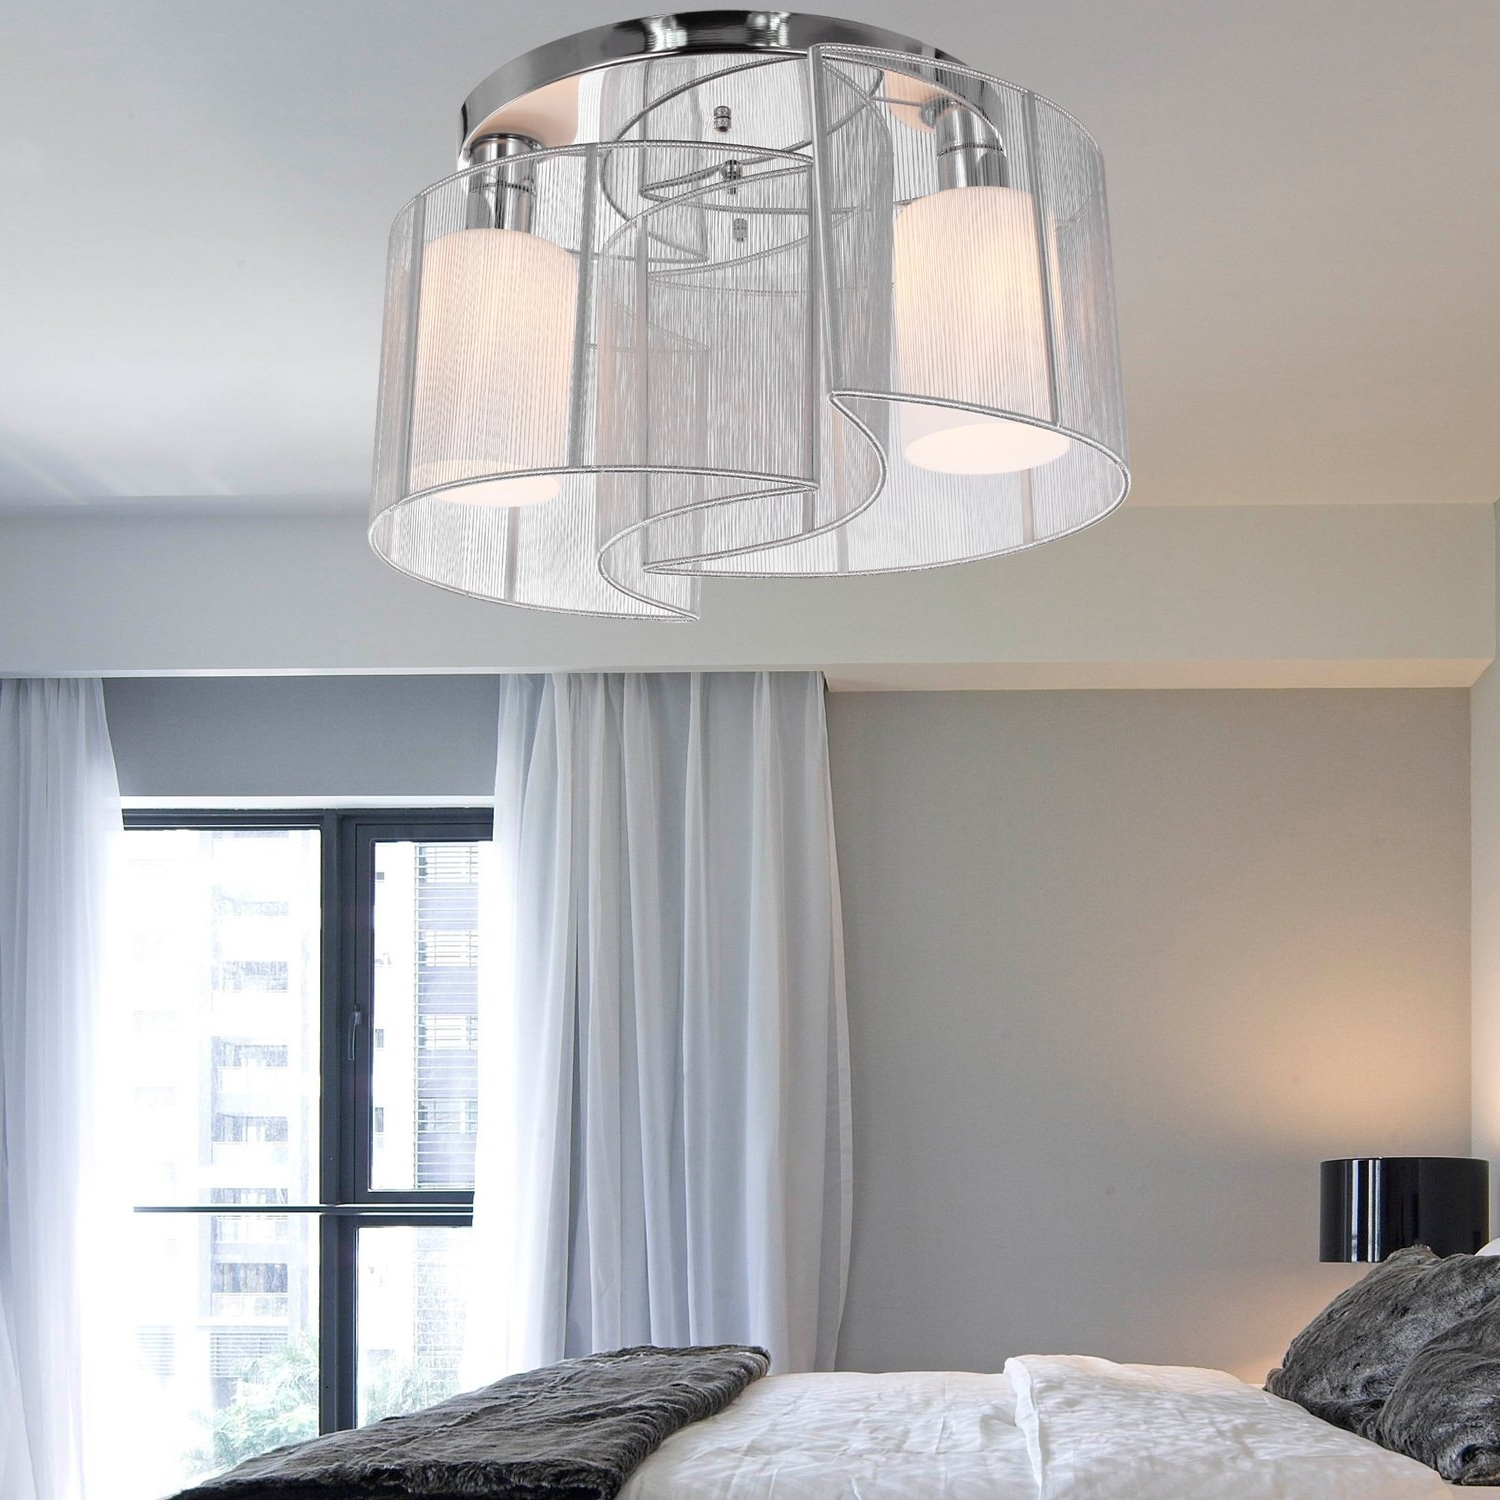 Chandelier Night Stand Lamps For Favorite Light Fixture : Night Stand Lamps Master Bedroom Ceiling Ideas (View 7 of 15)